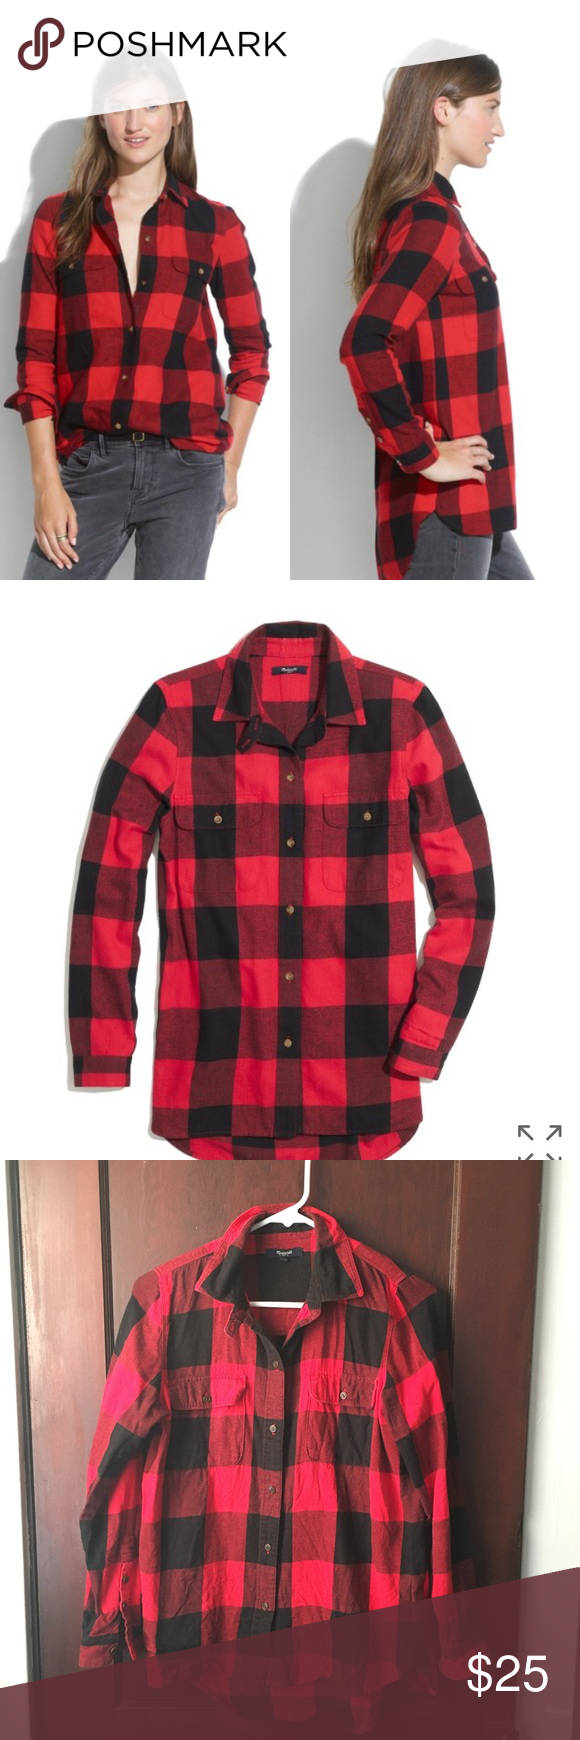 Red flannel fabric  Madewell  Flannel tomboy workshirt in check  Tomboy style Front